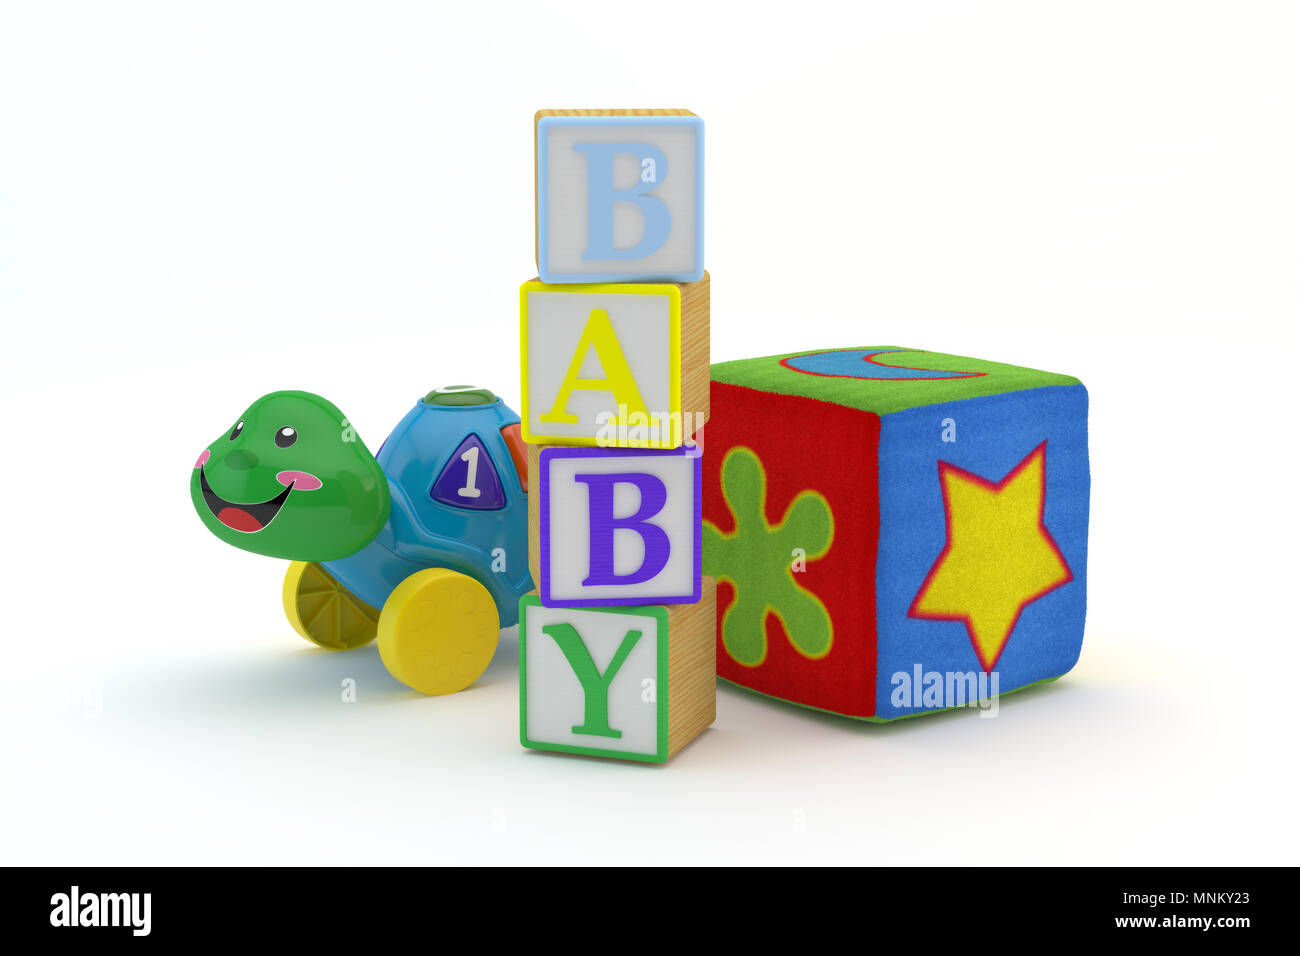 Wood Toy Blocks Spelling Baby With Baby Toys In Background Isolated